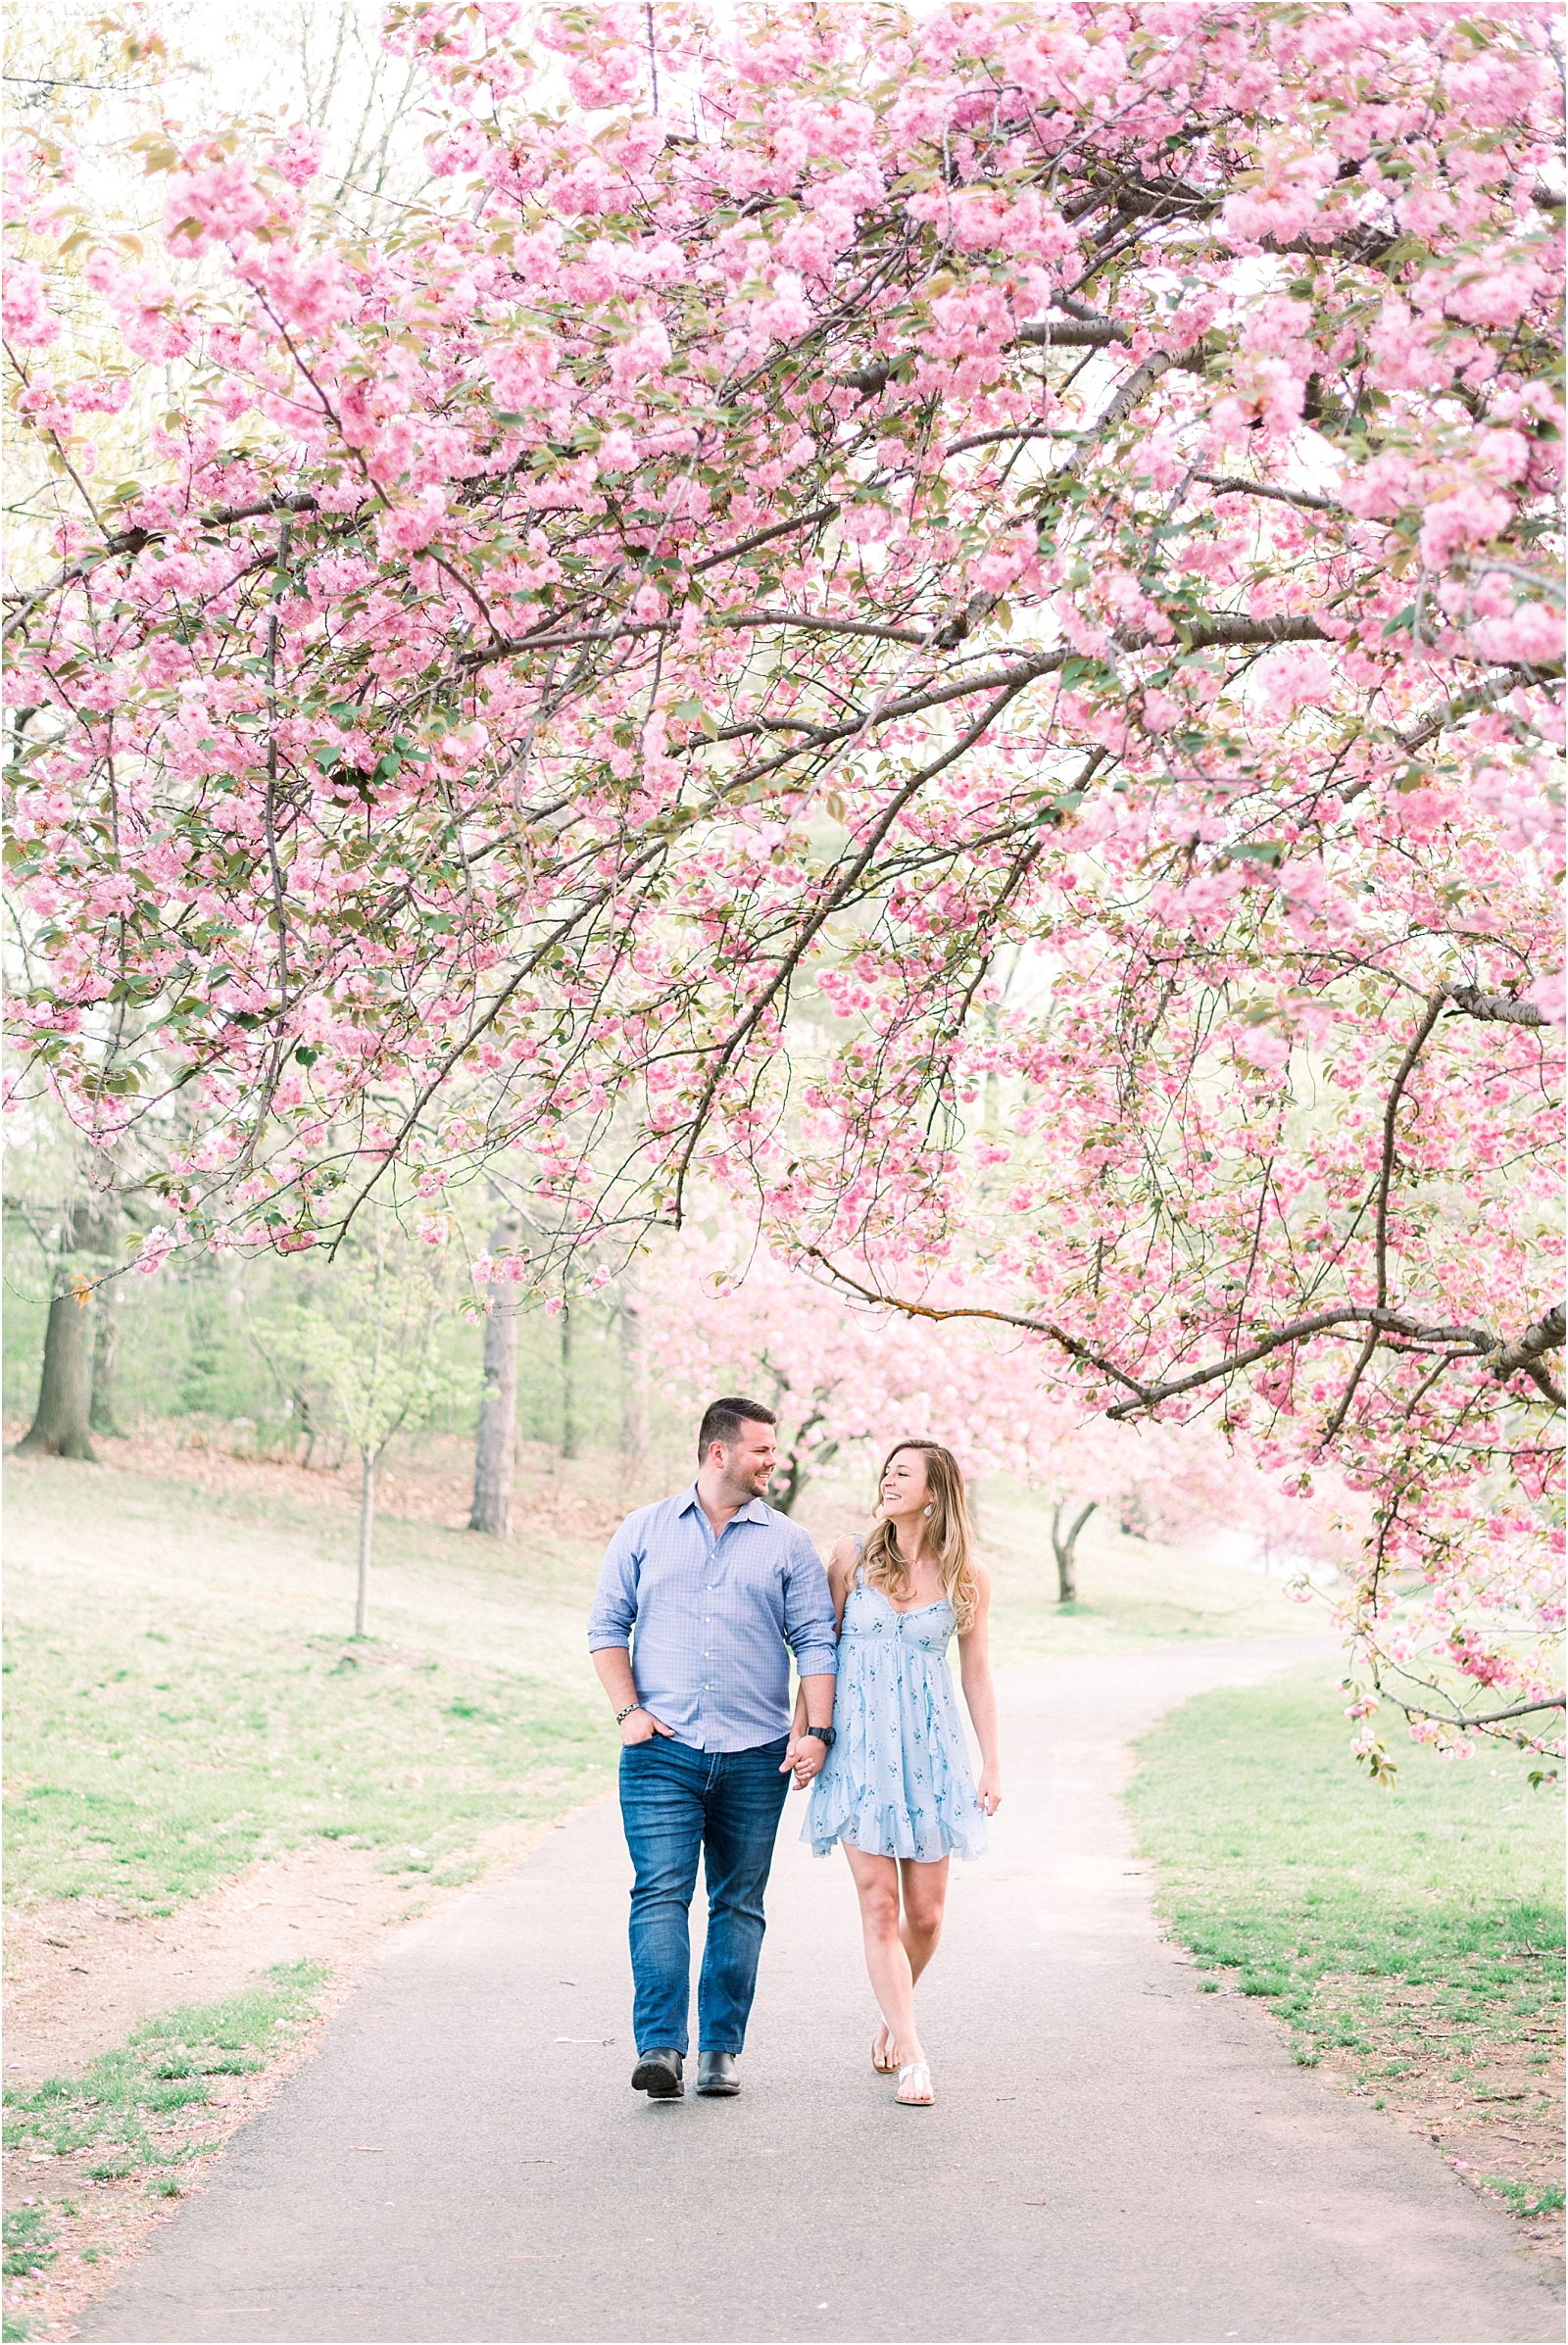 MT_branch_brook_park_engagement_session (4).jpg